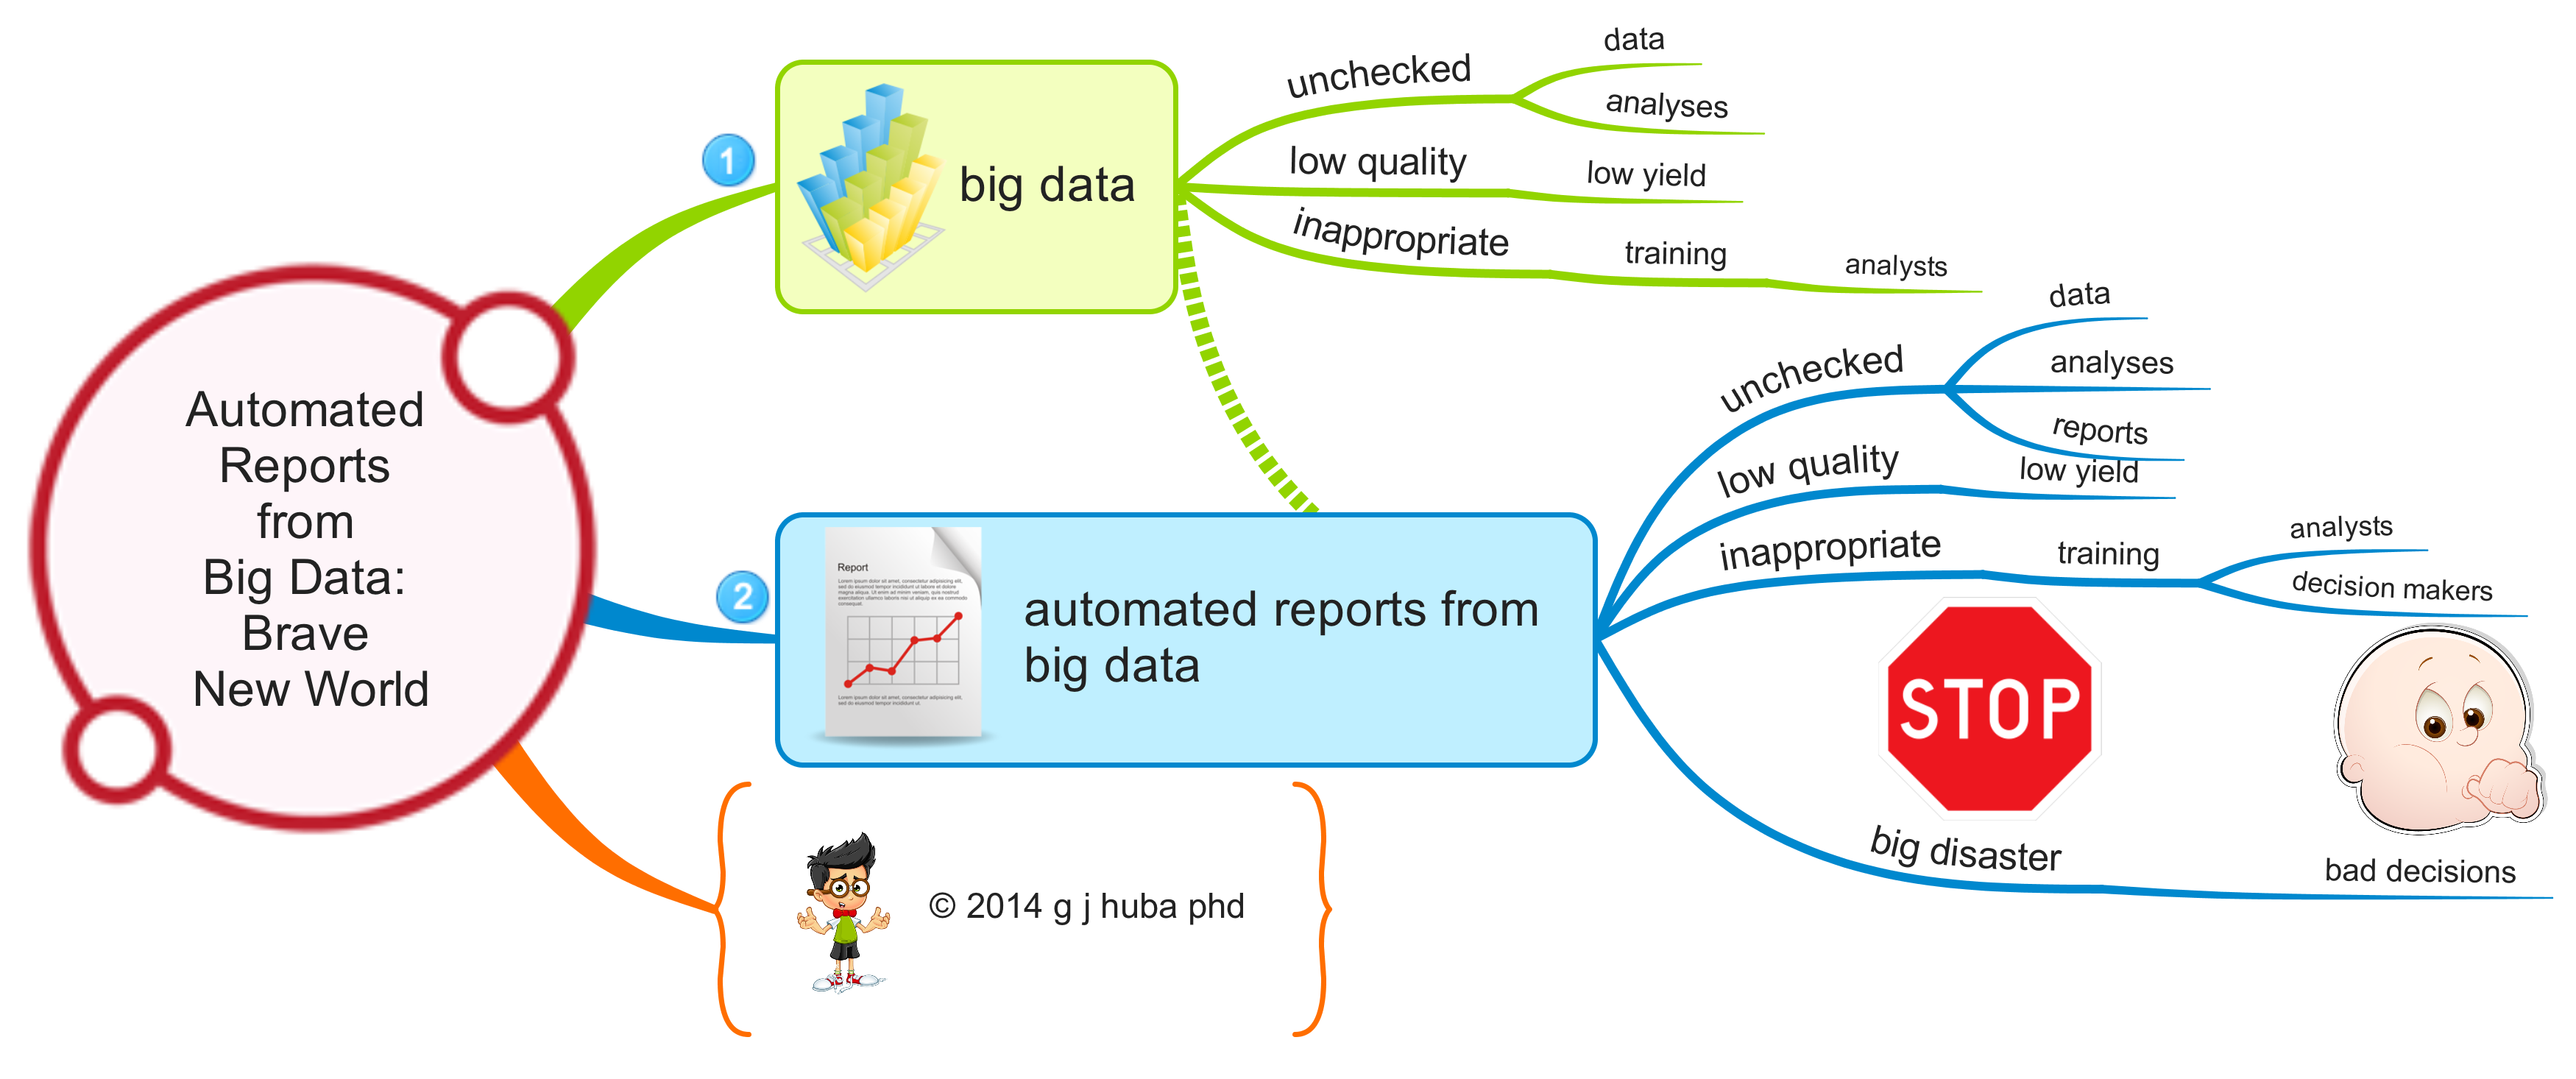 bigdata automatedreports bigidiocy brave new world automated reports from big data brave new world